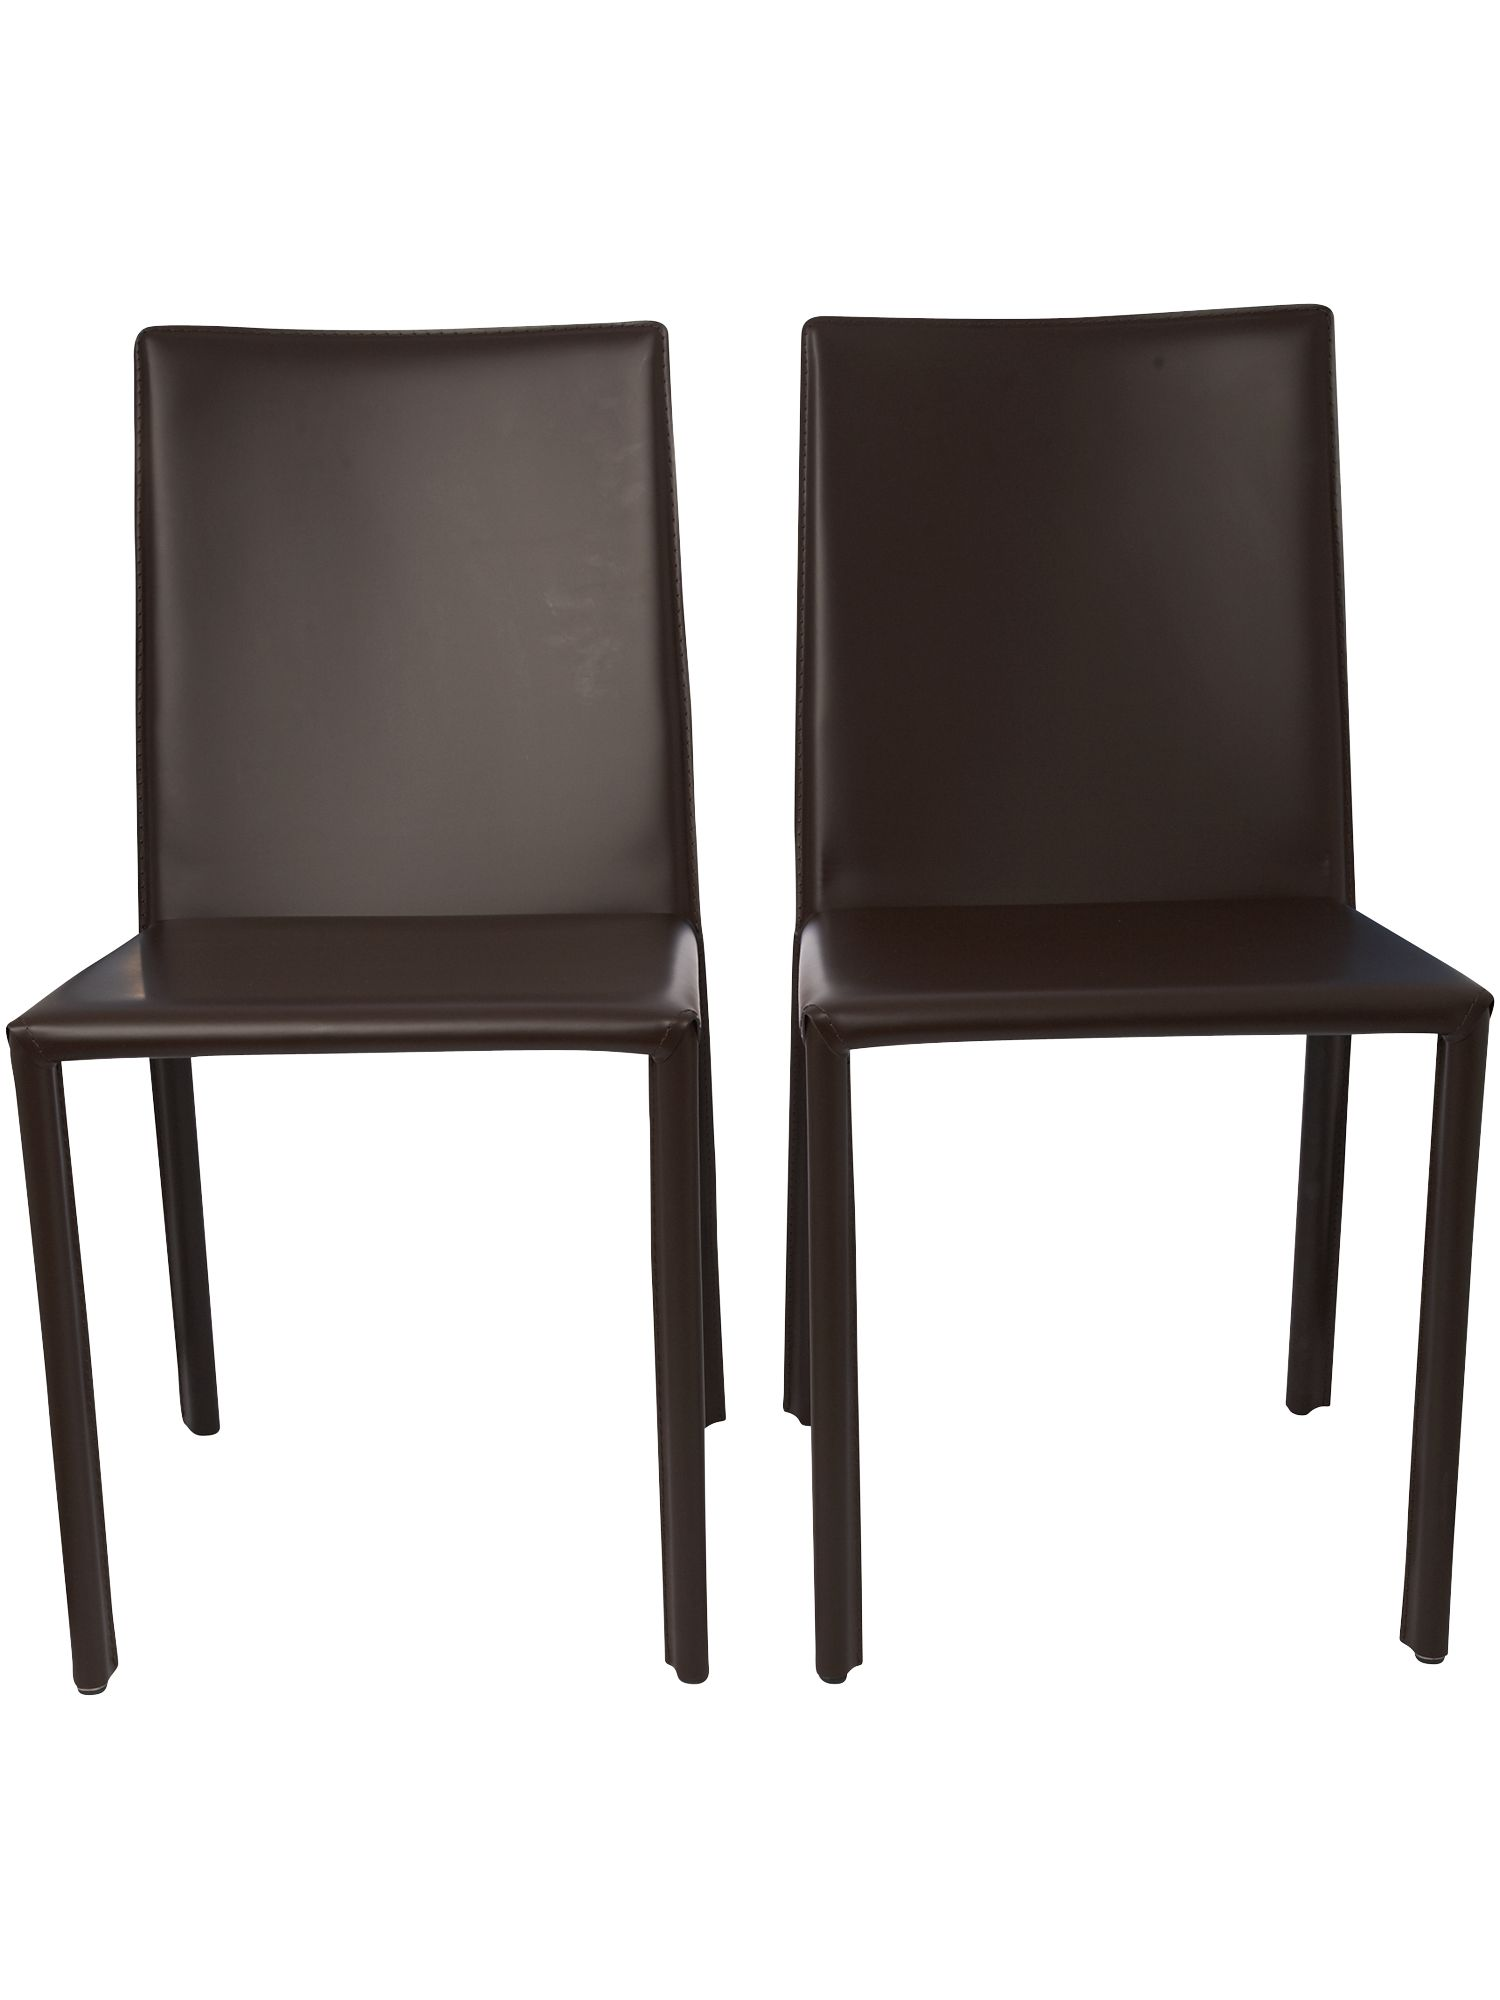 Pair of aida dining chairs in dark brown